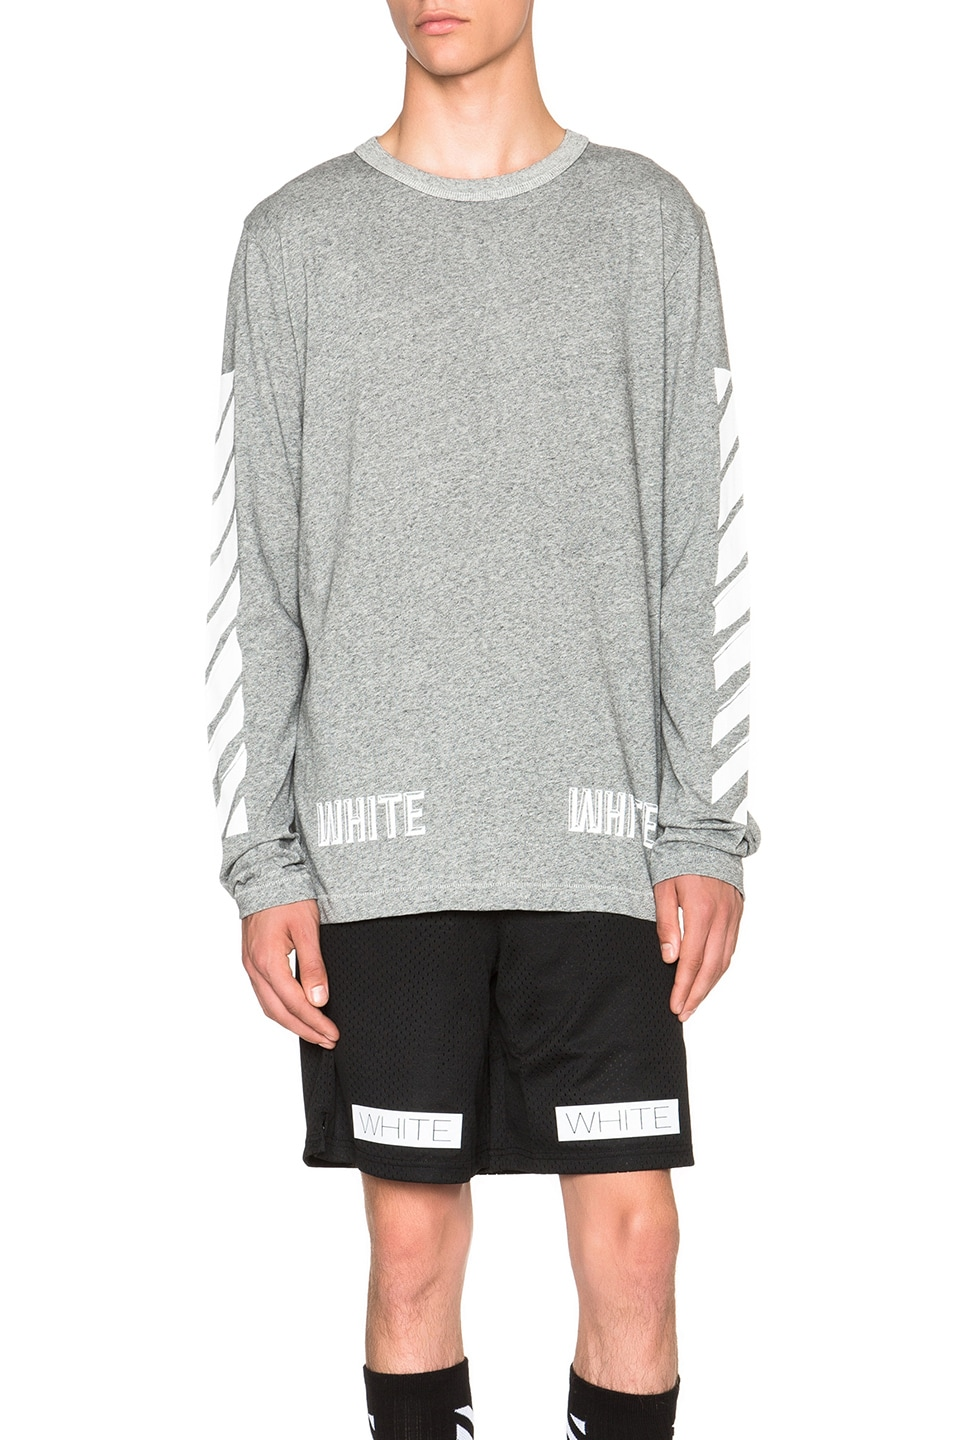 59b14599511f Image 1 of OFF-WHITE 3D White Long Sleeve Tee in Grey